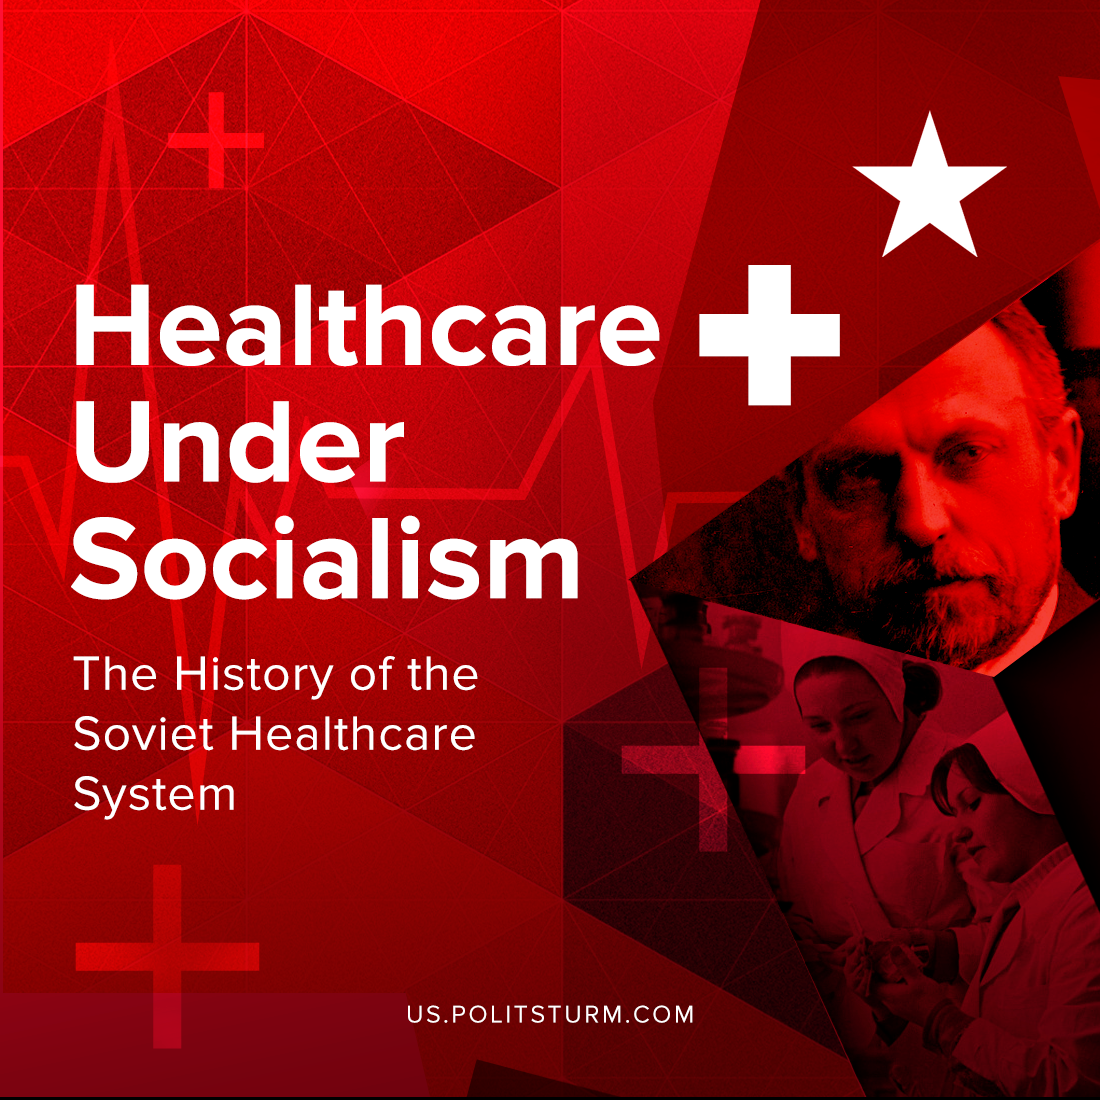 Healthcare Under Socialism: The History of the Soviet Healthcare System